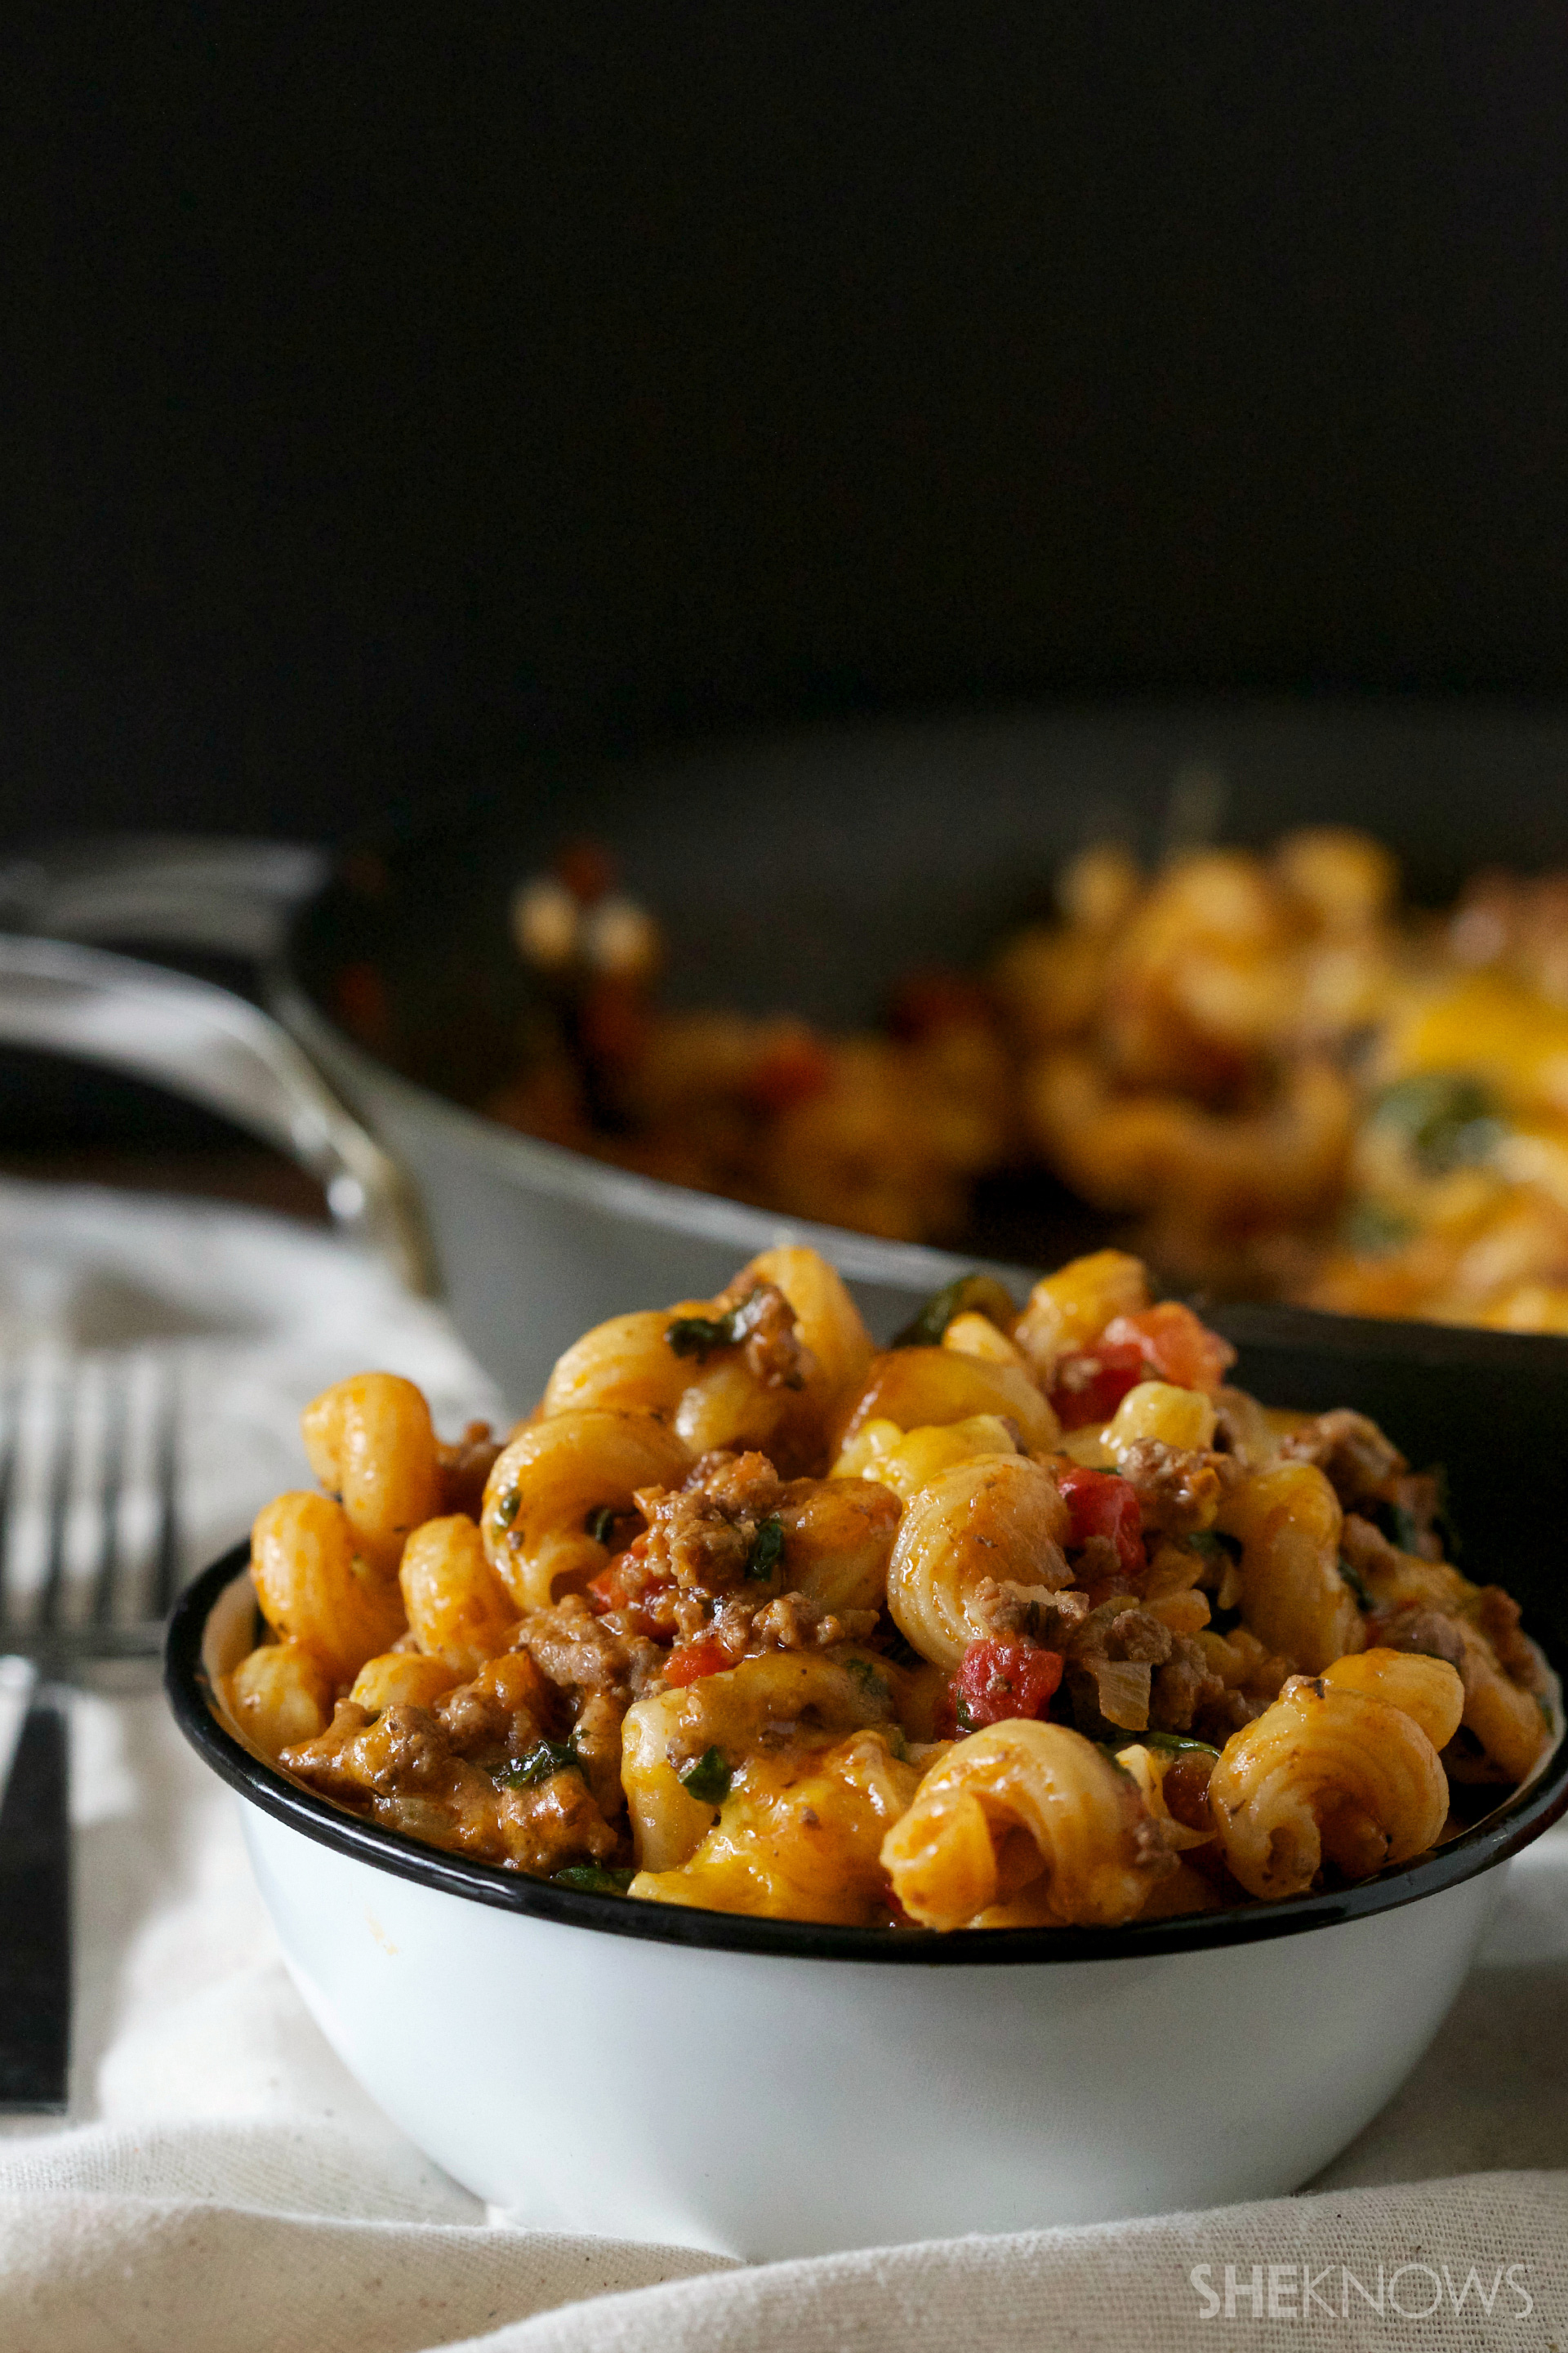 You can't go wrong with this easy, cheesy one-skillet beef and mac